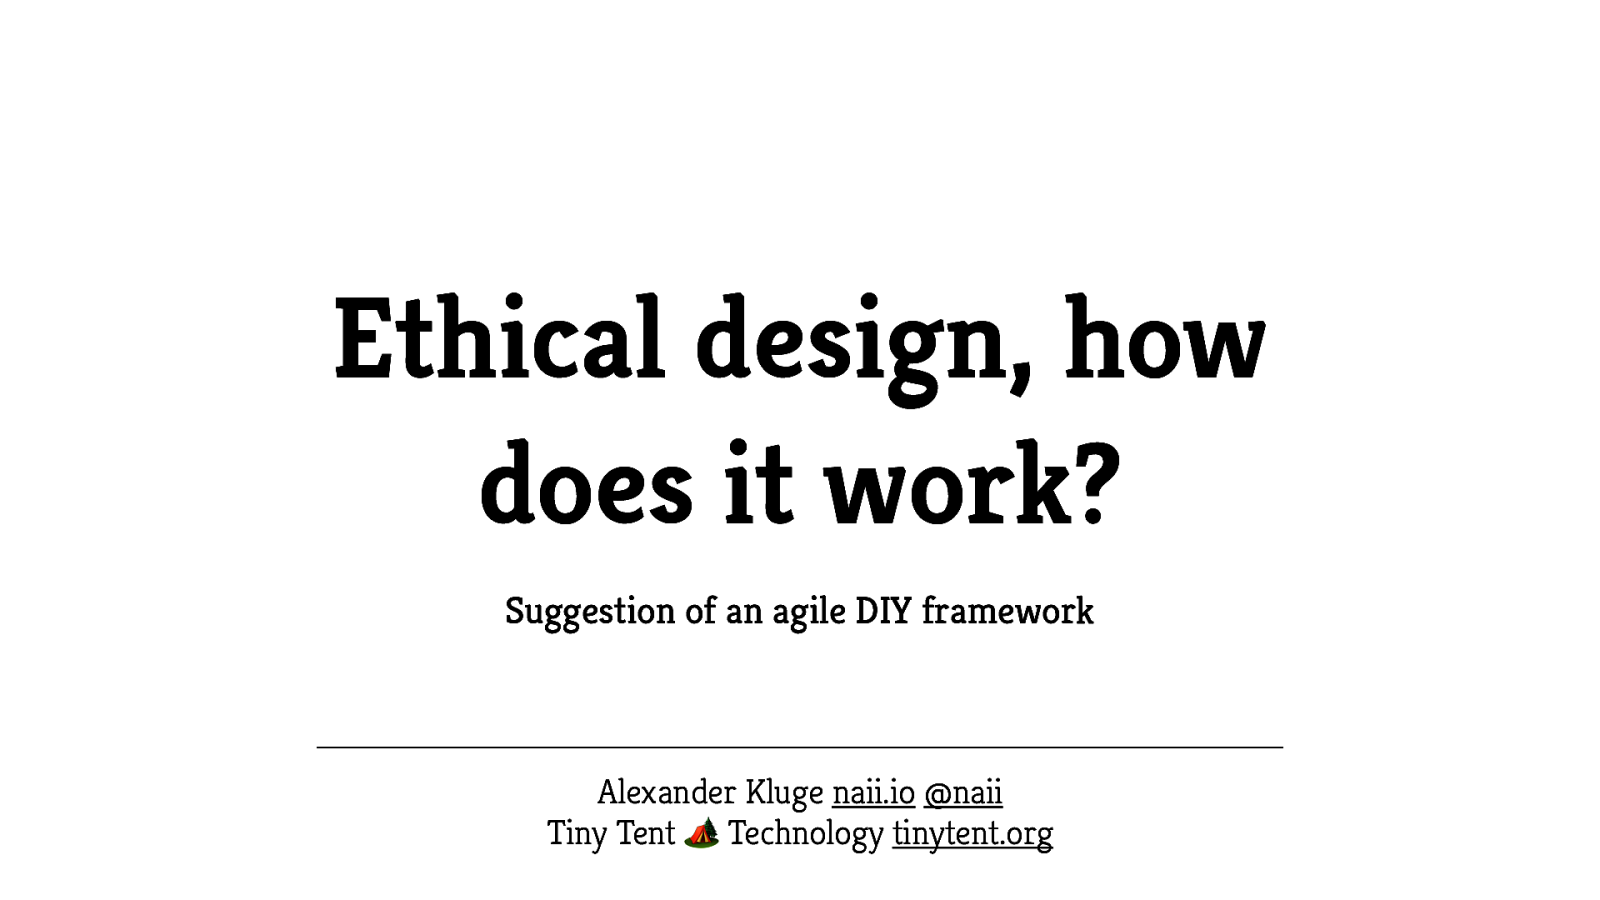 Ethical design, how does it work? Suggestion of an agile DIY framework